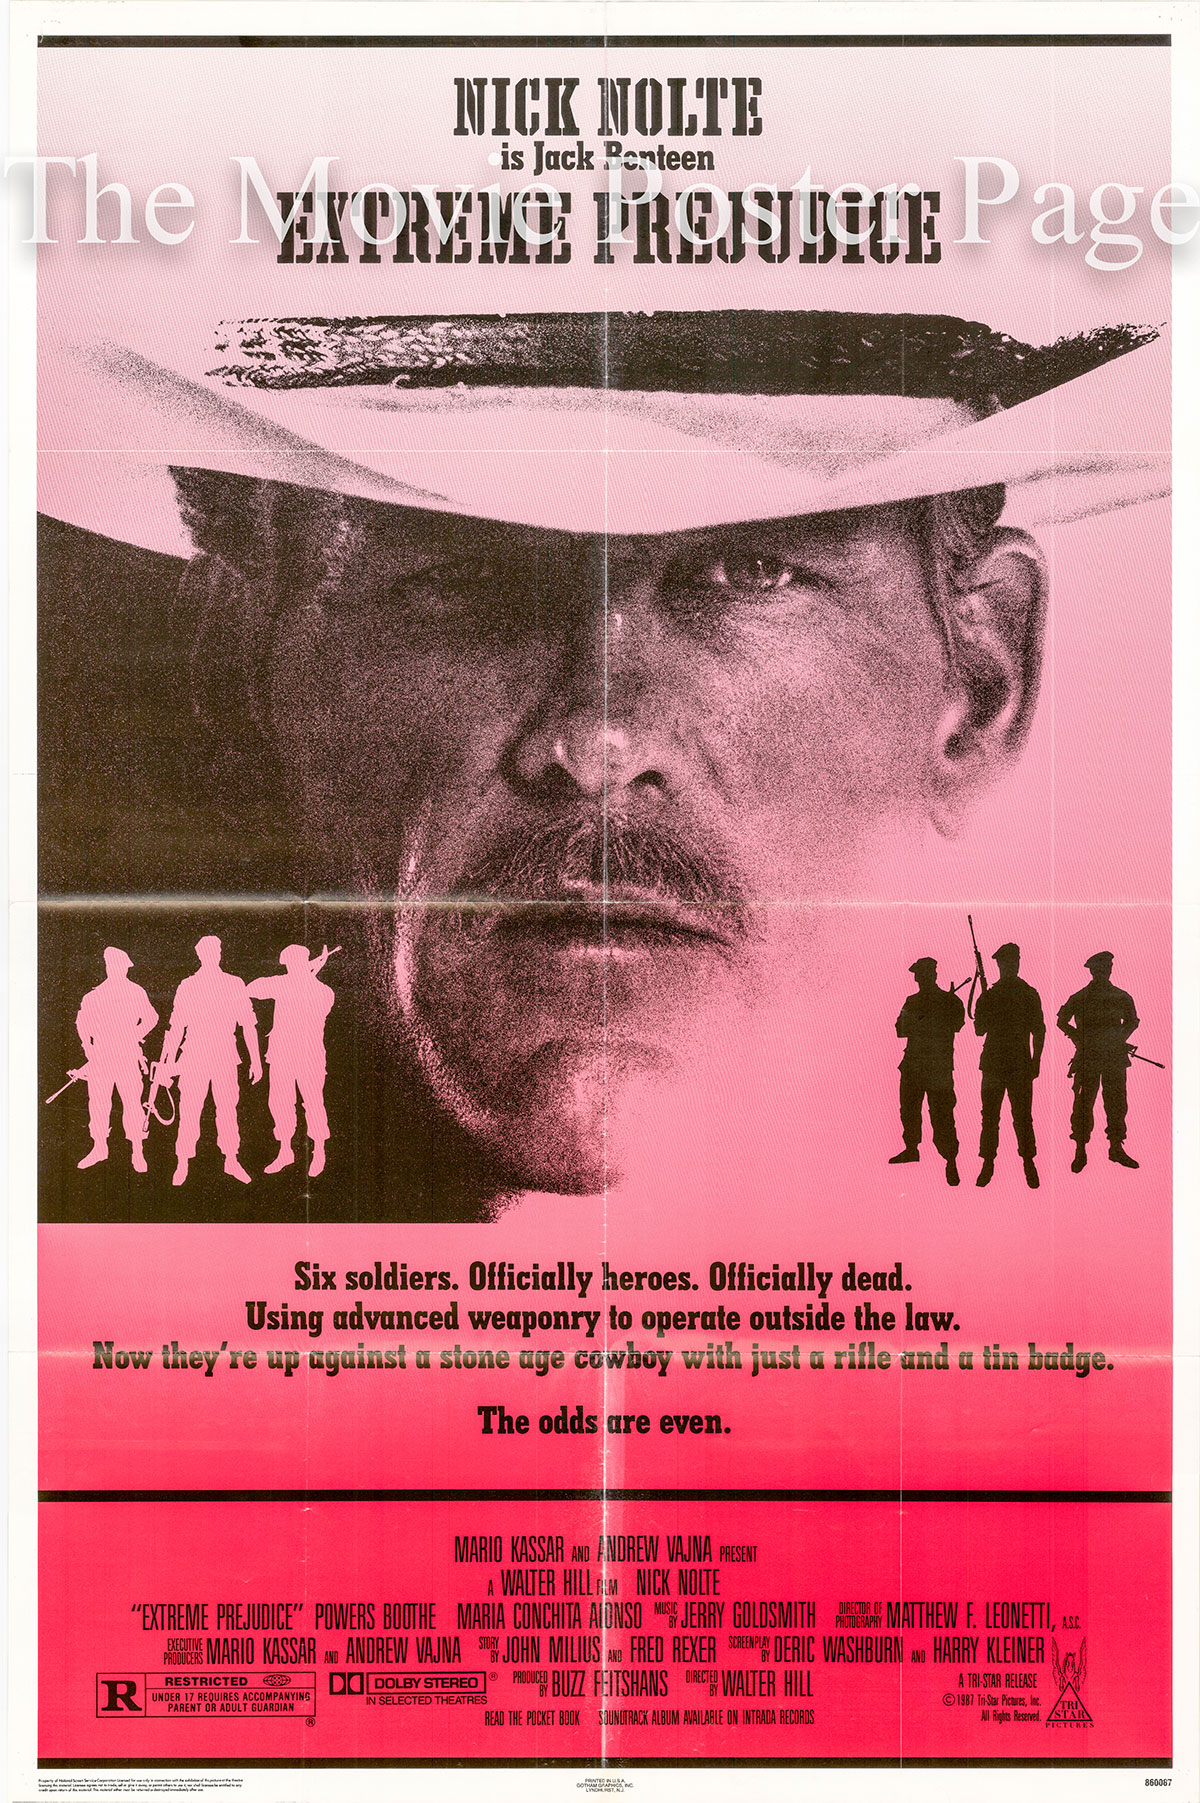 Pictured is a US one-sheet poster for the 1981 Walter Hill film Extreme prejudice starring Nick Nolte as Jack Benteen.